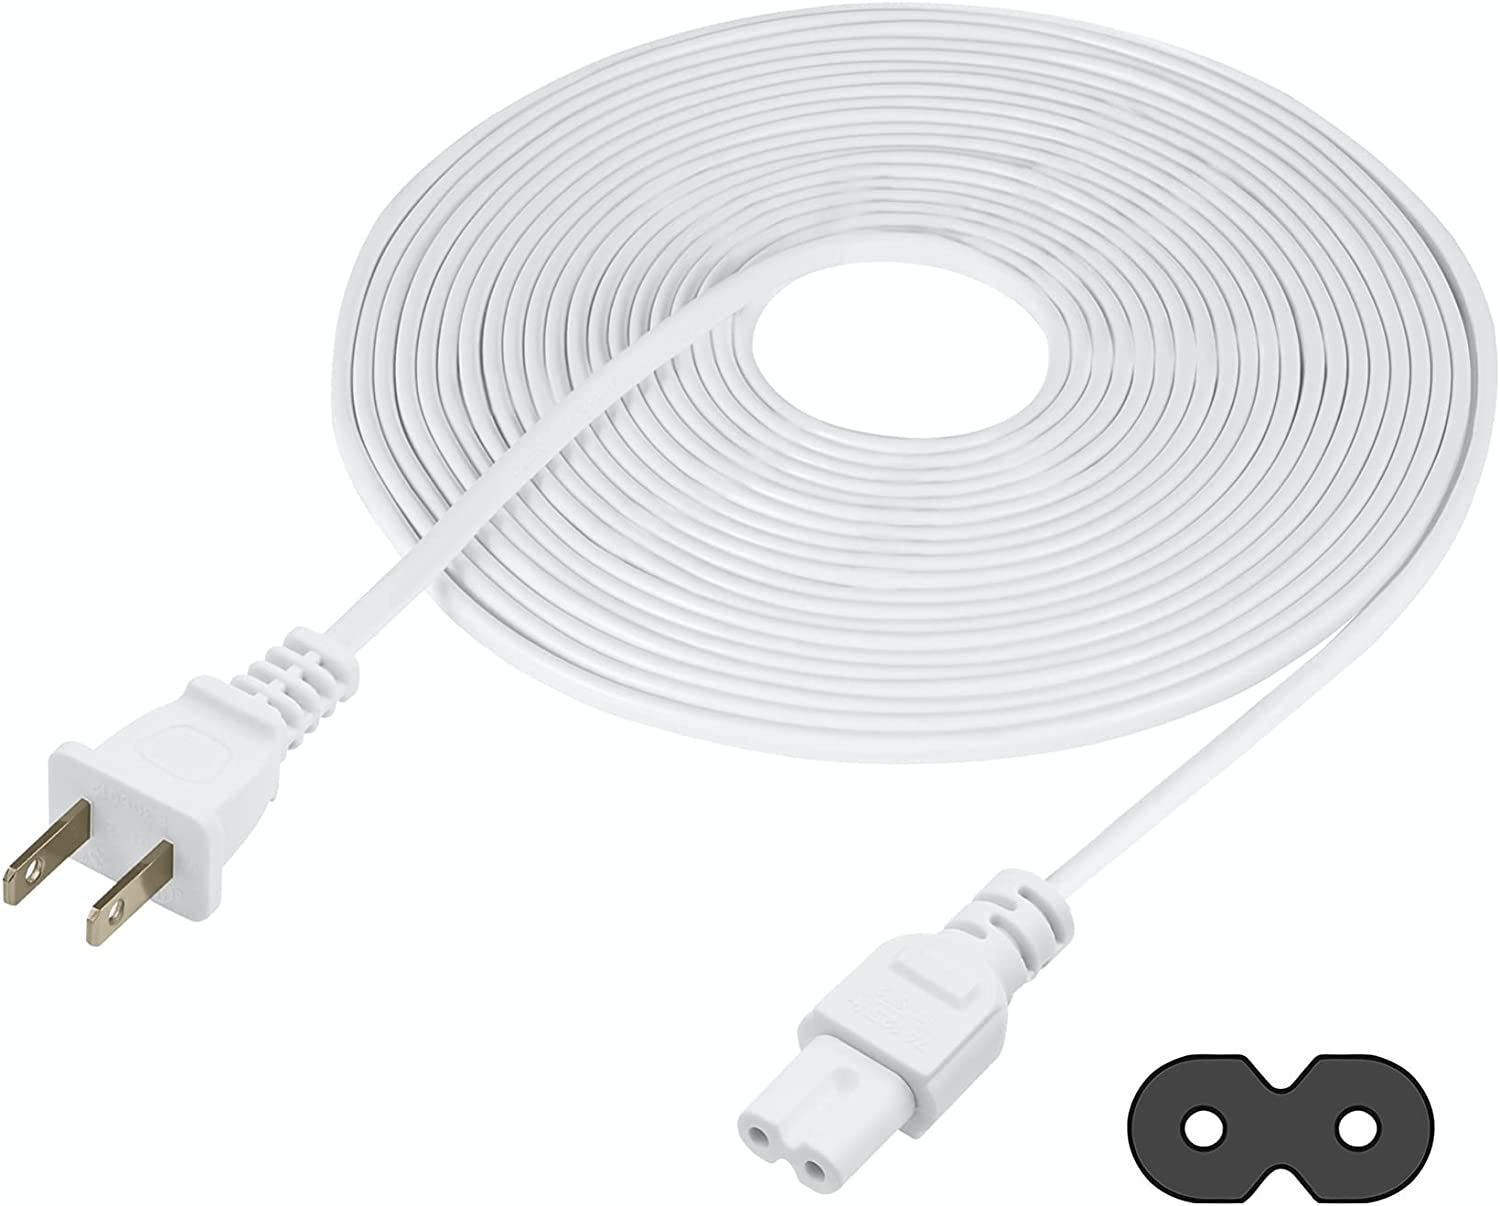 Vebner Extra Long 25-Foot TV Power Cord Compatible with Select Samsung, LG, Sony, Hisense, Xbox, PS5 Electronics and More - 2-Prong AC Wall Plug - 2-Slot Straight Plug (White, 25-Foot)